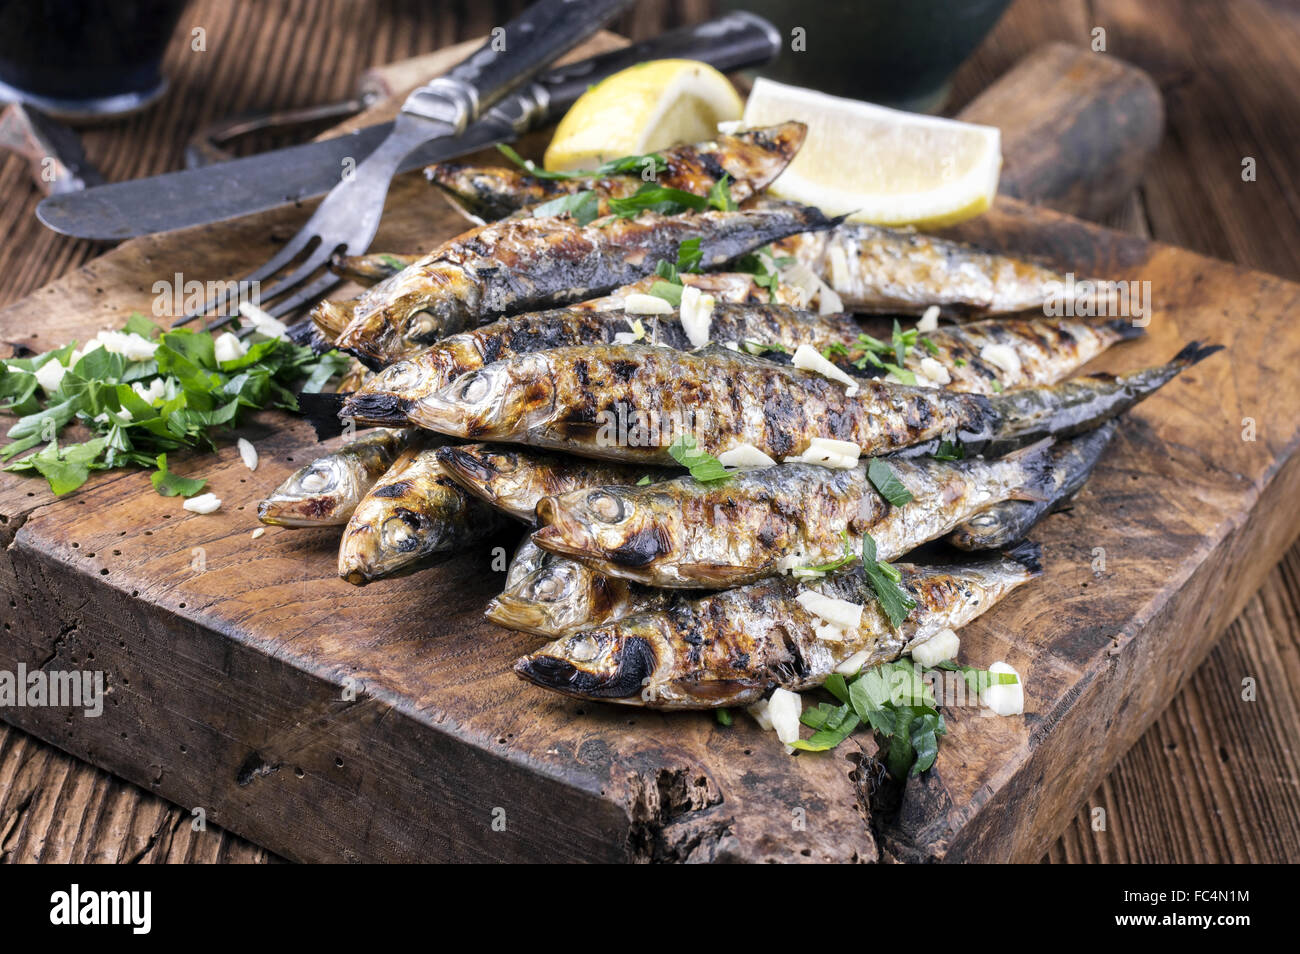 Grilled Anchovies - Stock Image